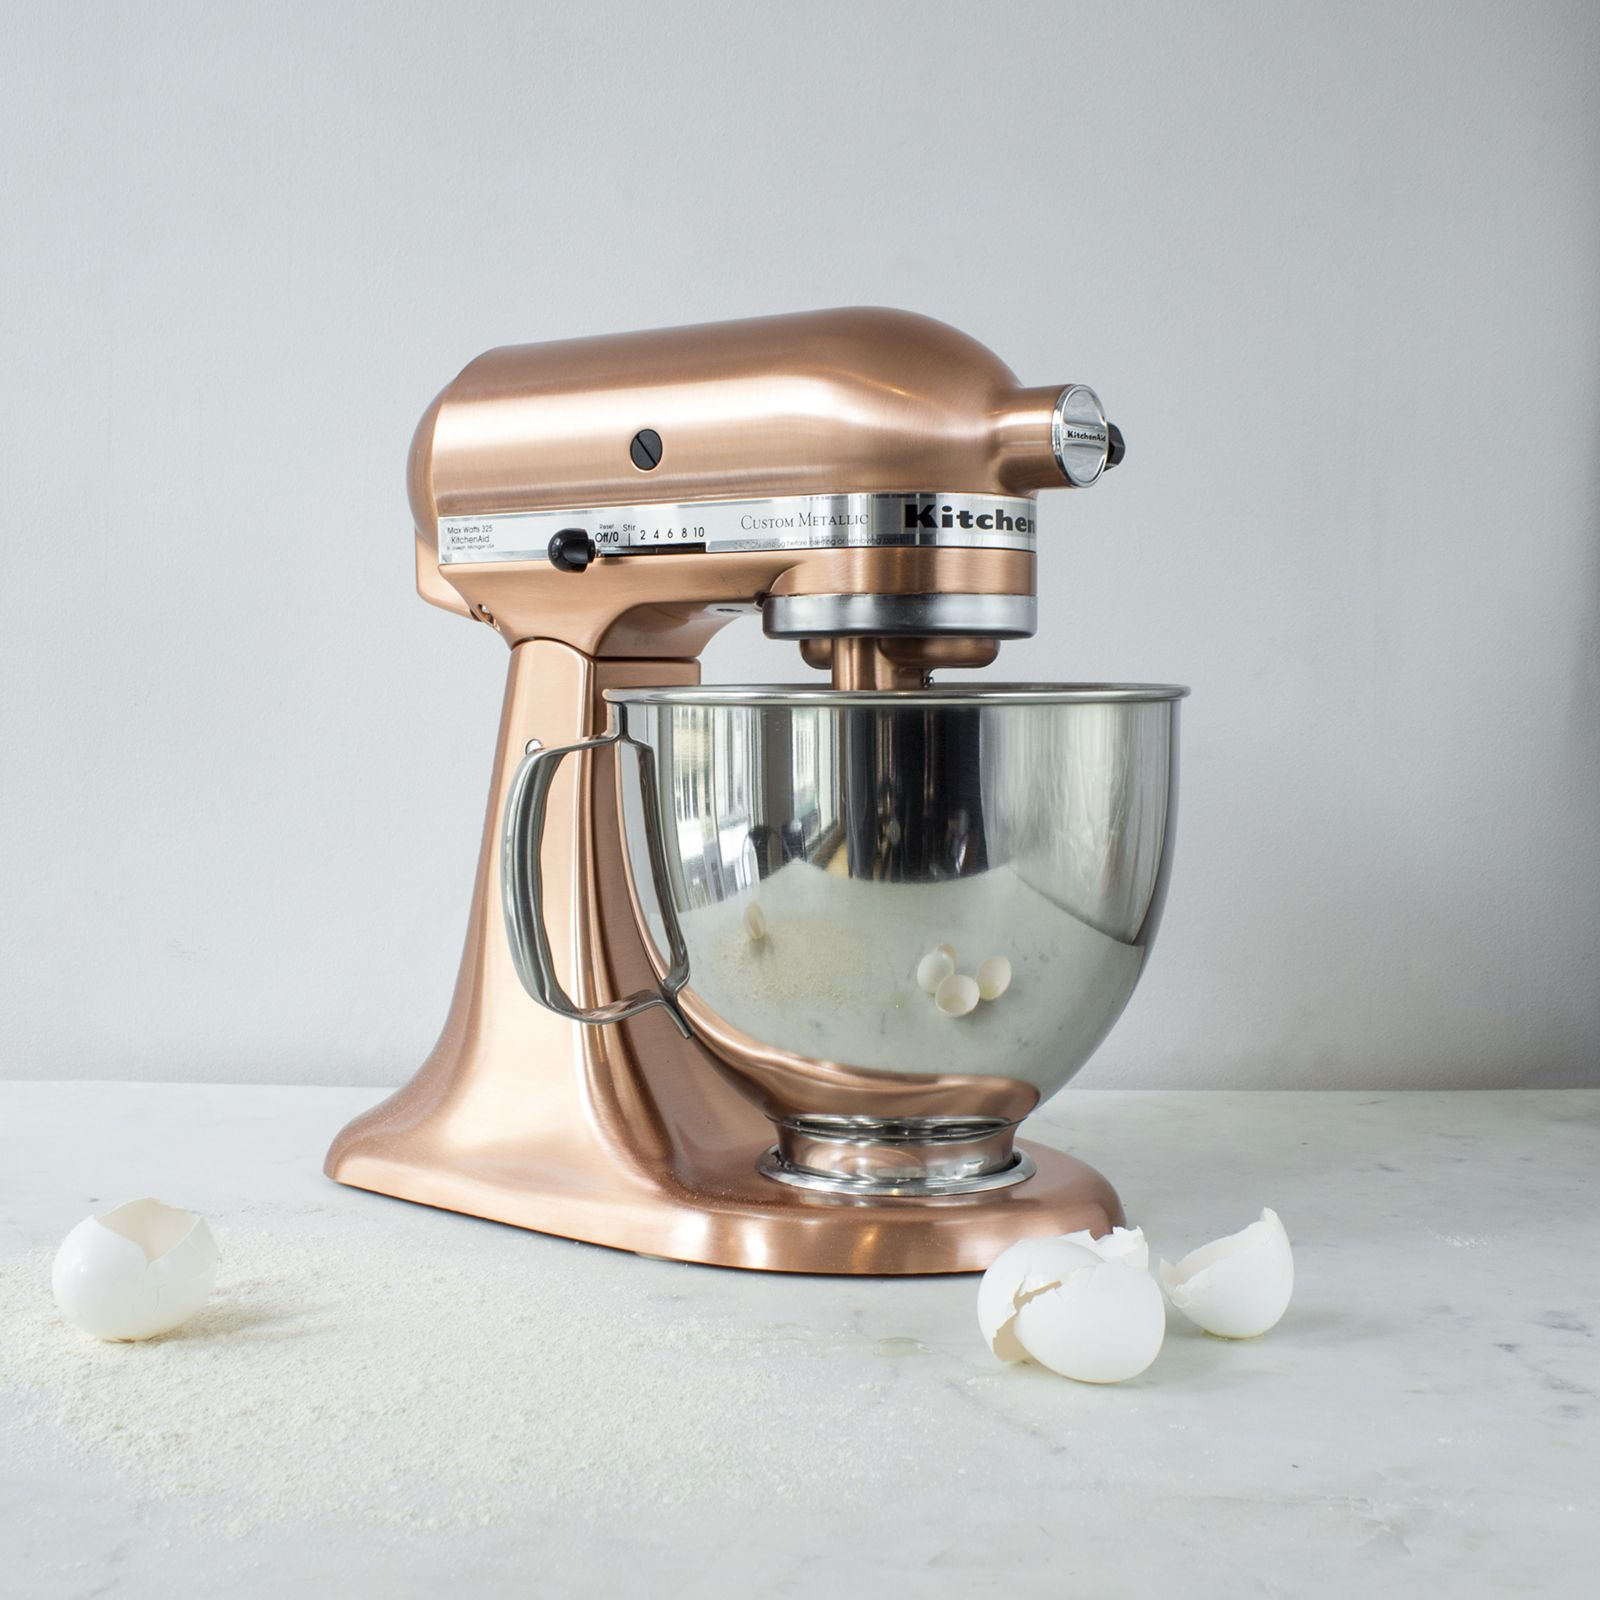 Home Decor Ideas For Kitchen | Kitchen aid mixer, Mixers and Essentials